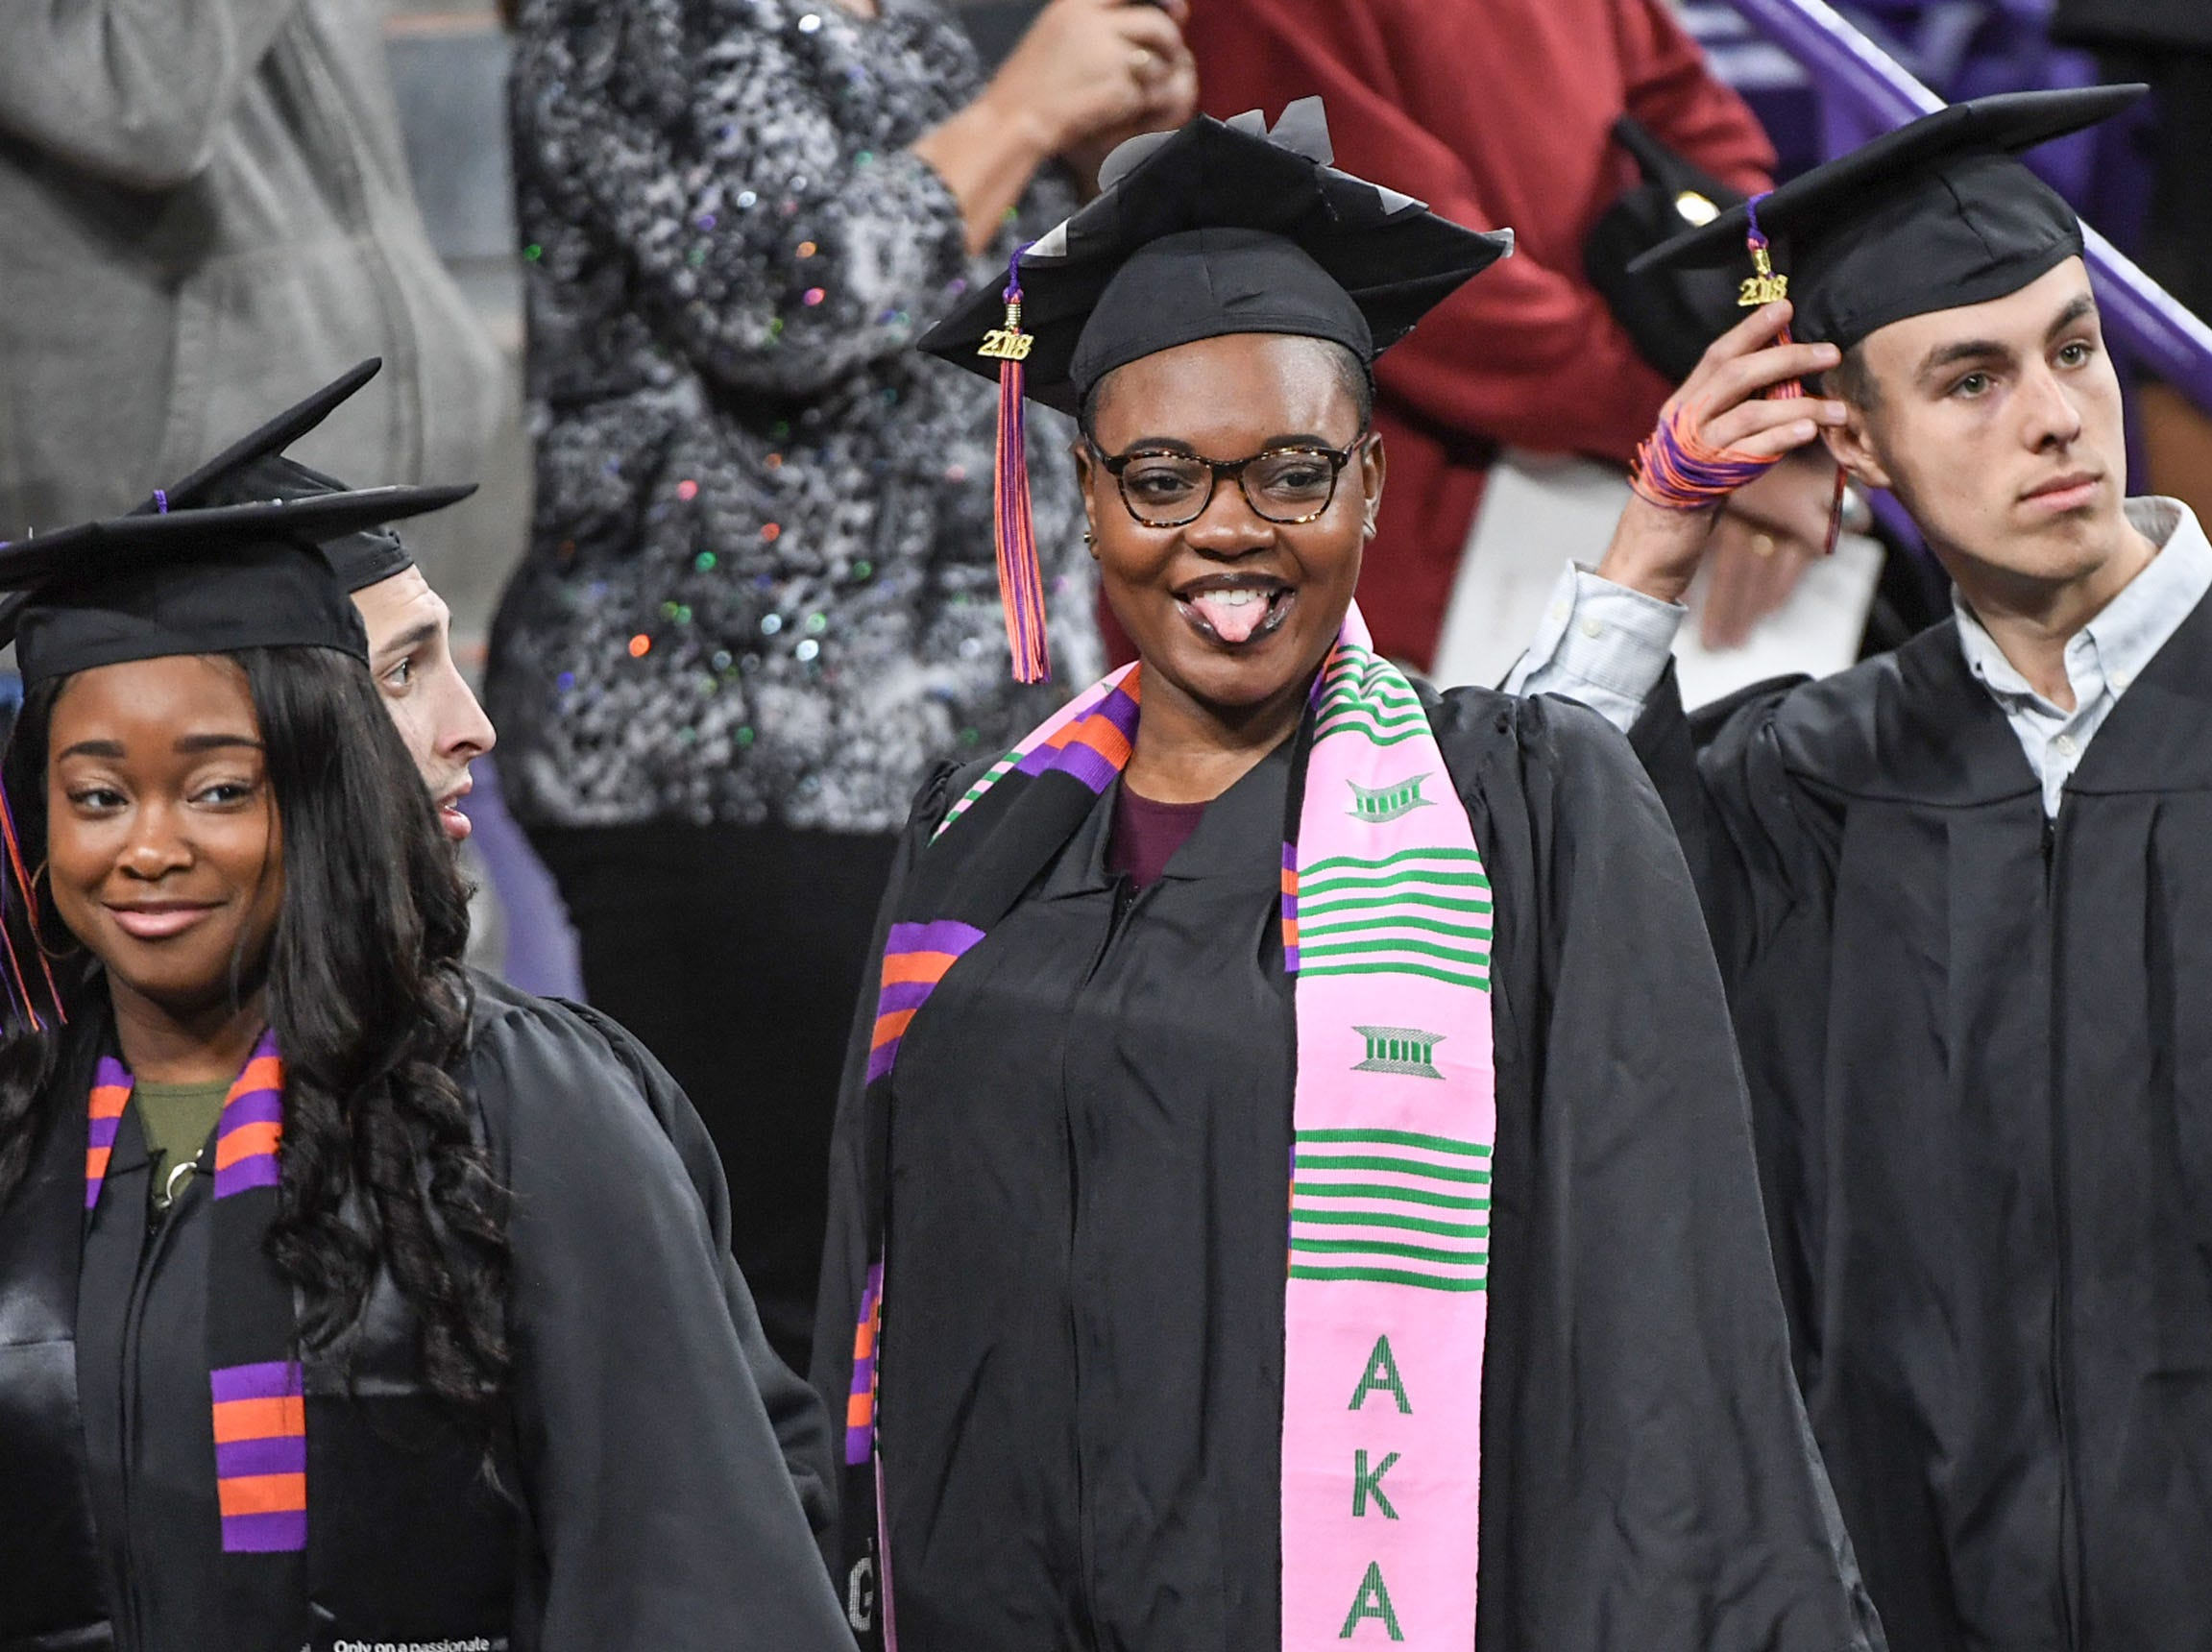 Barbara Dinkins, middle, reacts as she arrives in the arena for the Clemson University morning graduation ceremony Thursday morning in Littlejohn Coliseum in Clemson.